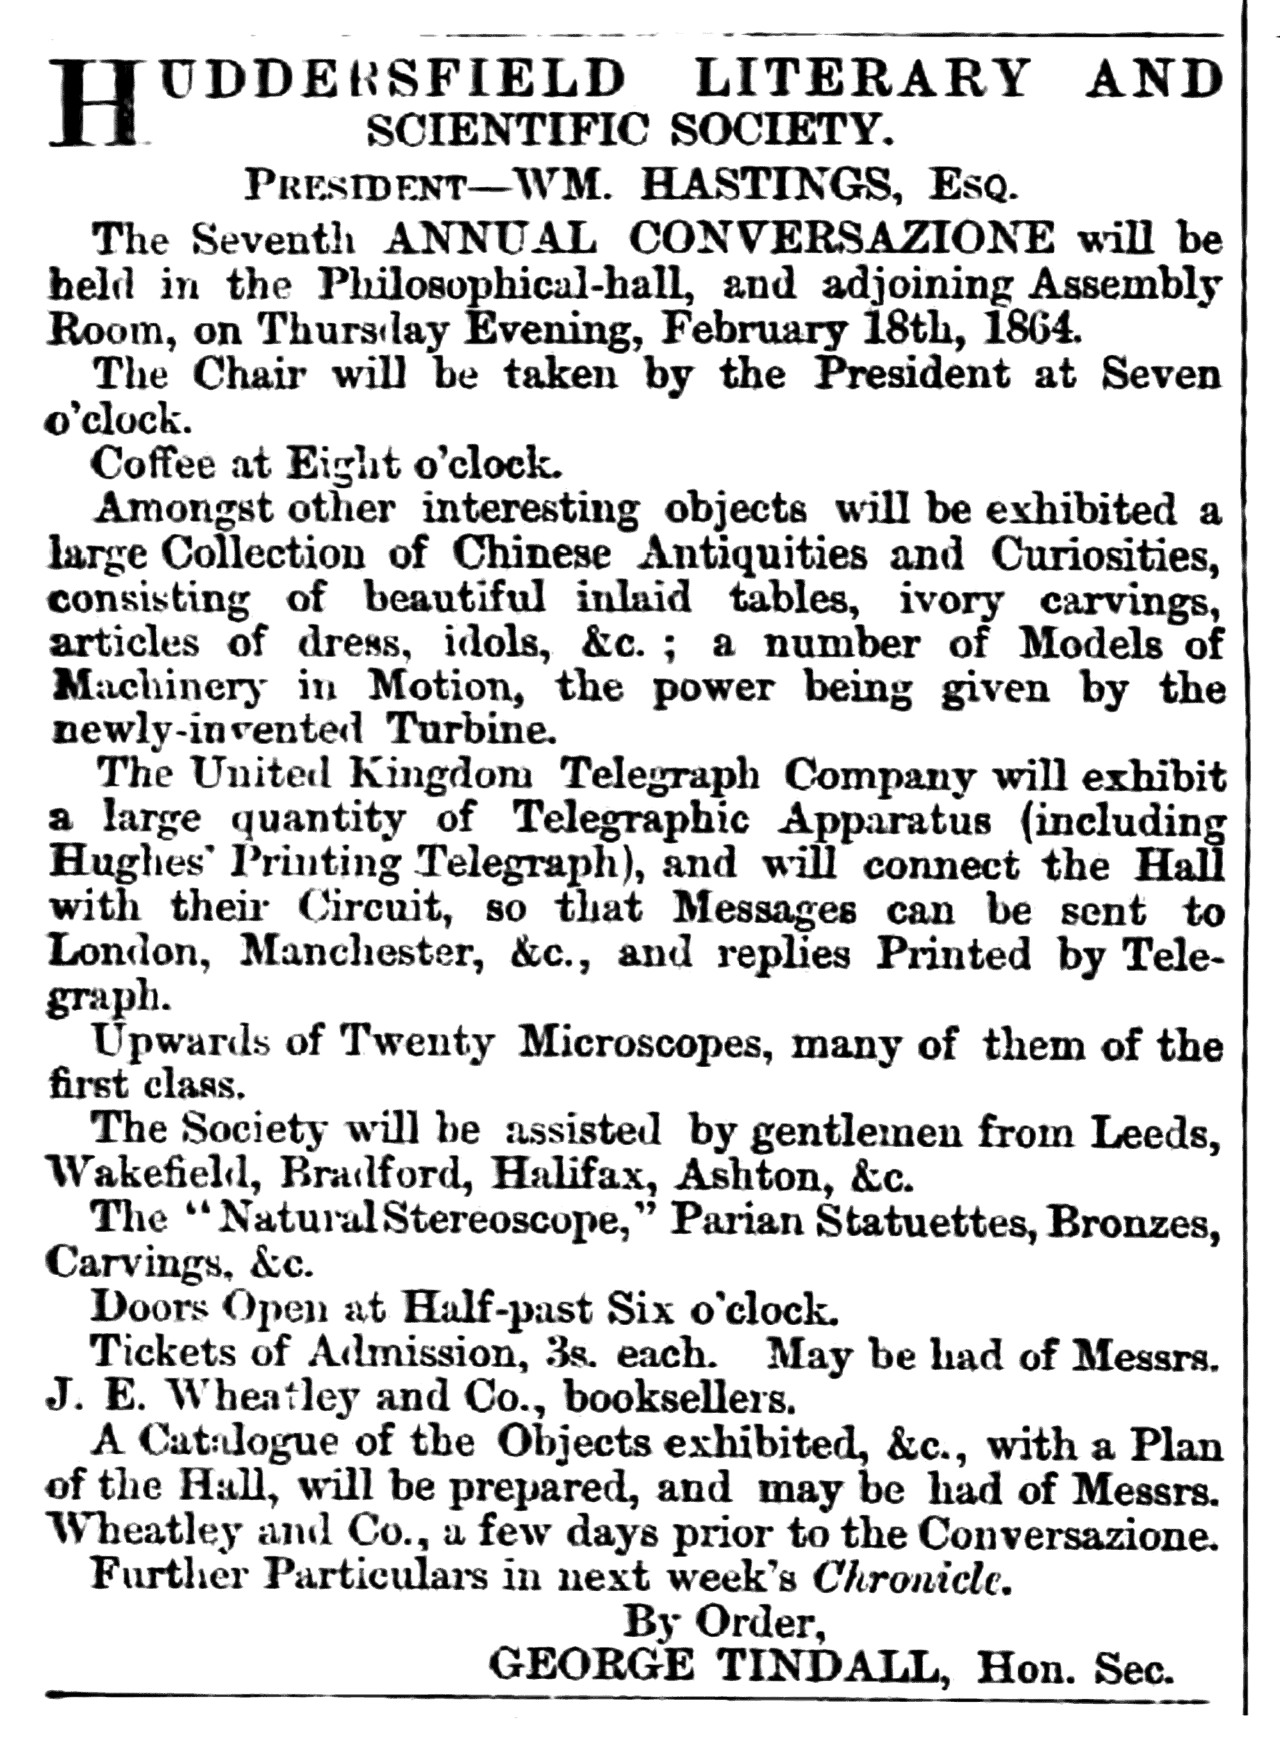 Huddersfield Chronicle 06 February 1864 Huddersfield Literary and Scientific Society.png